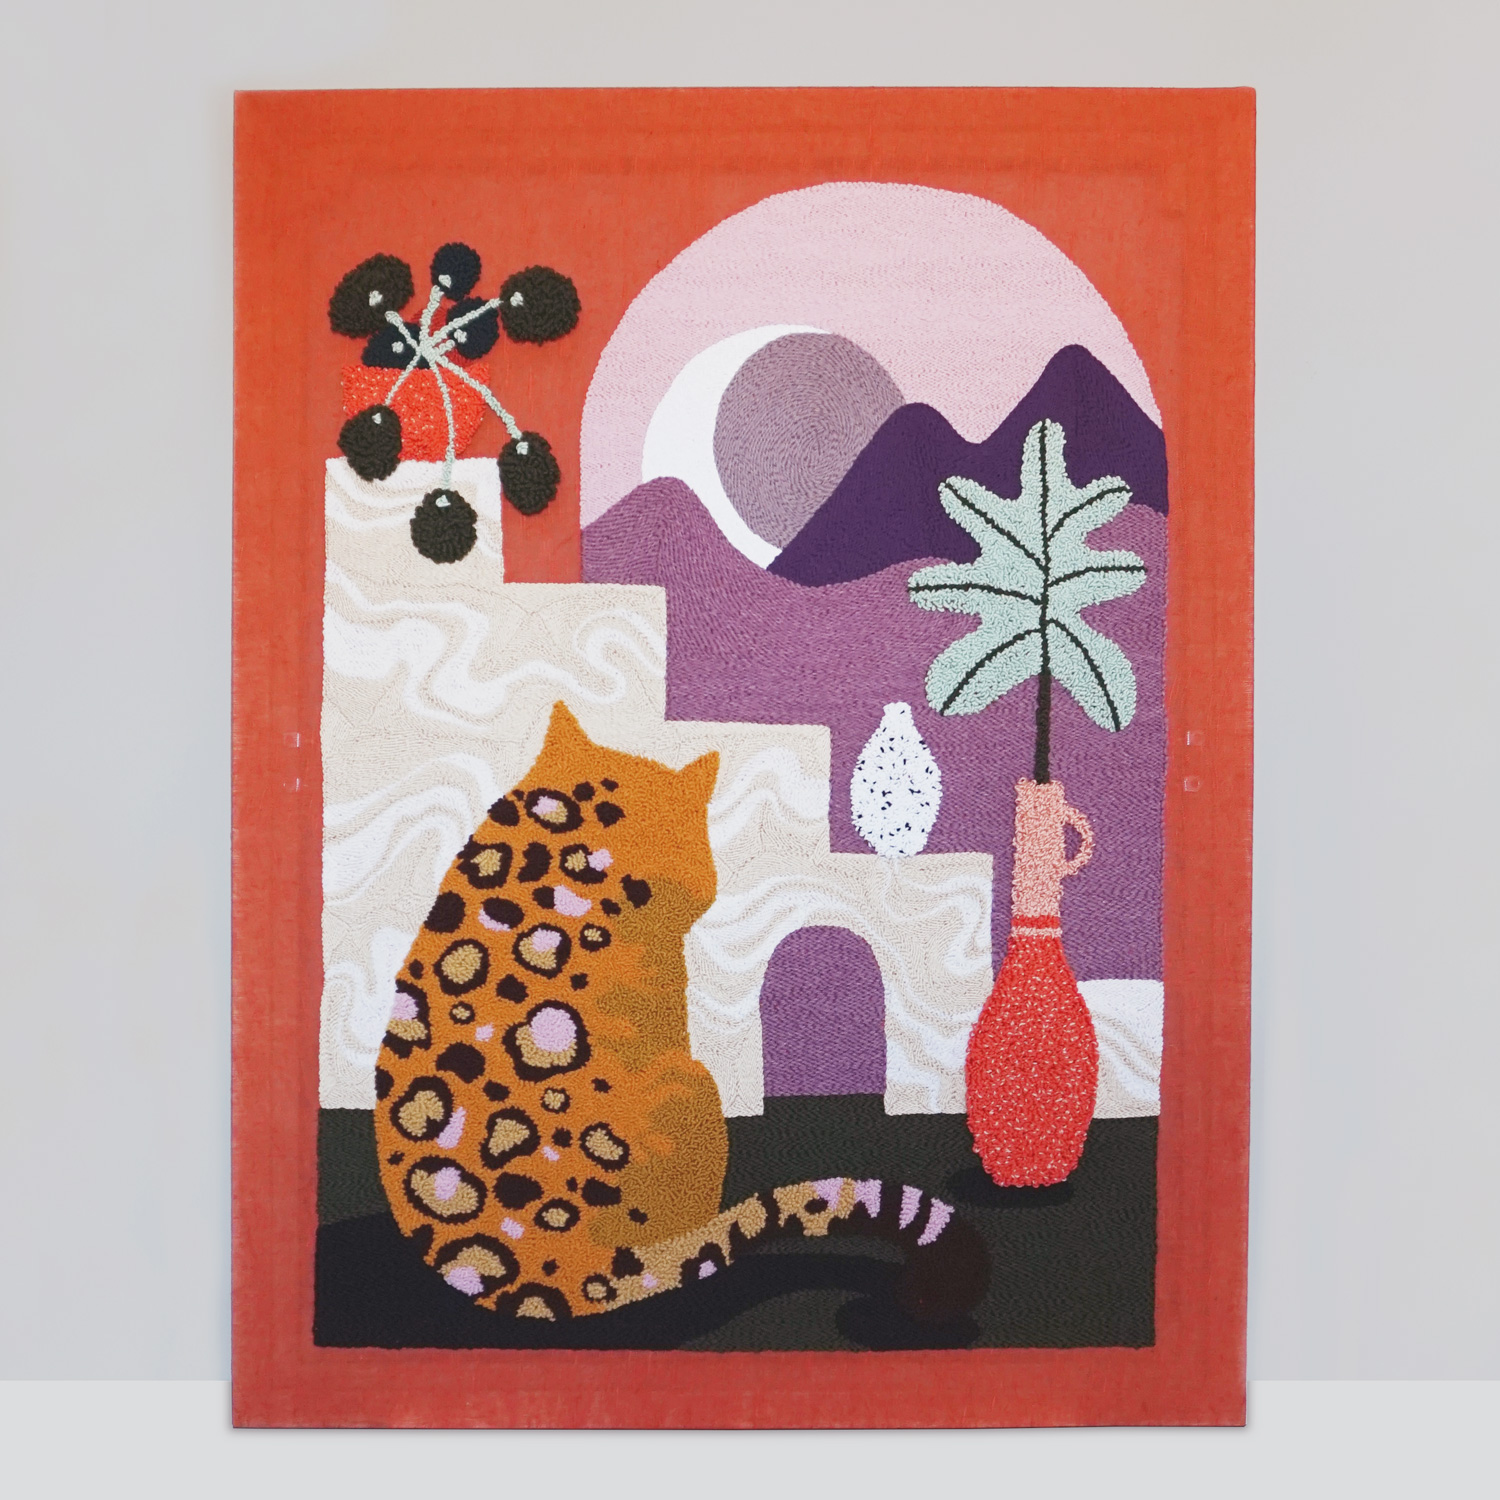 A large punch needle wall art, featuring a fluffy leopard looking out at a desert scene in moon light.